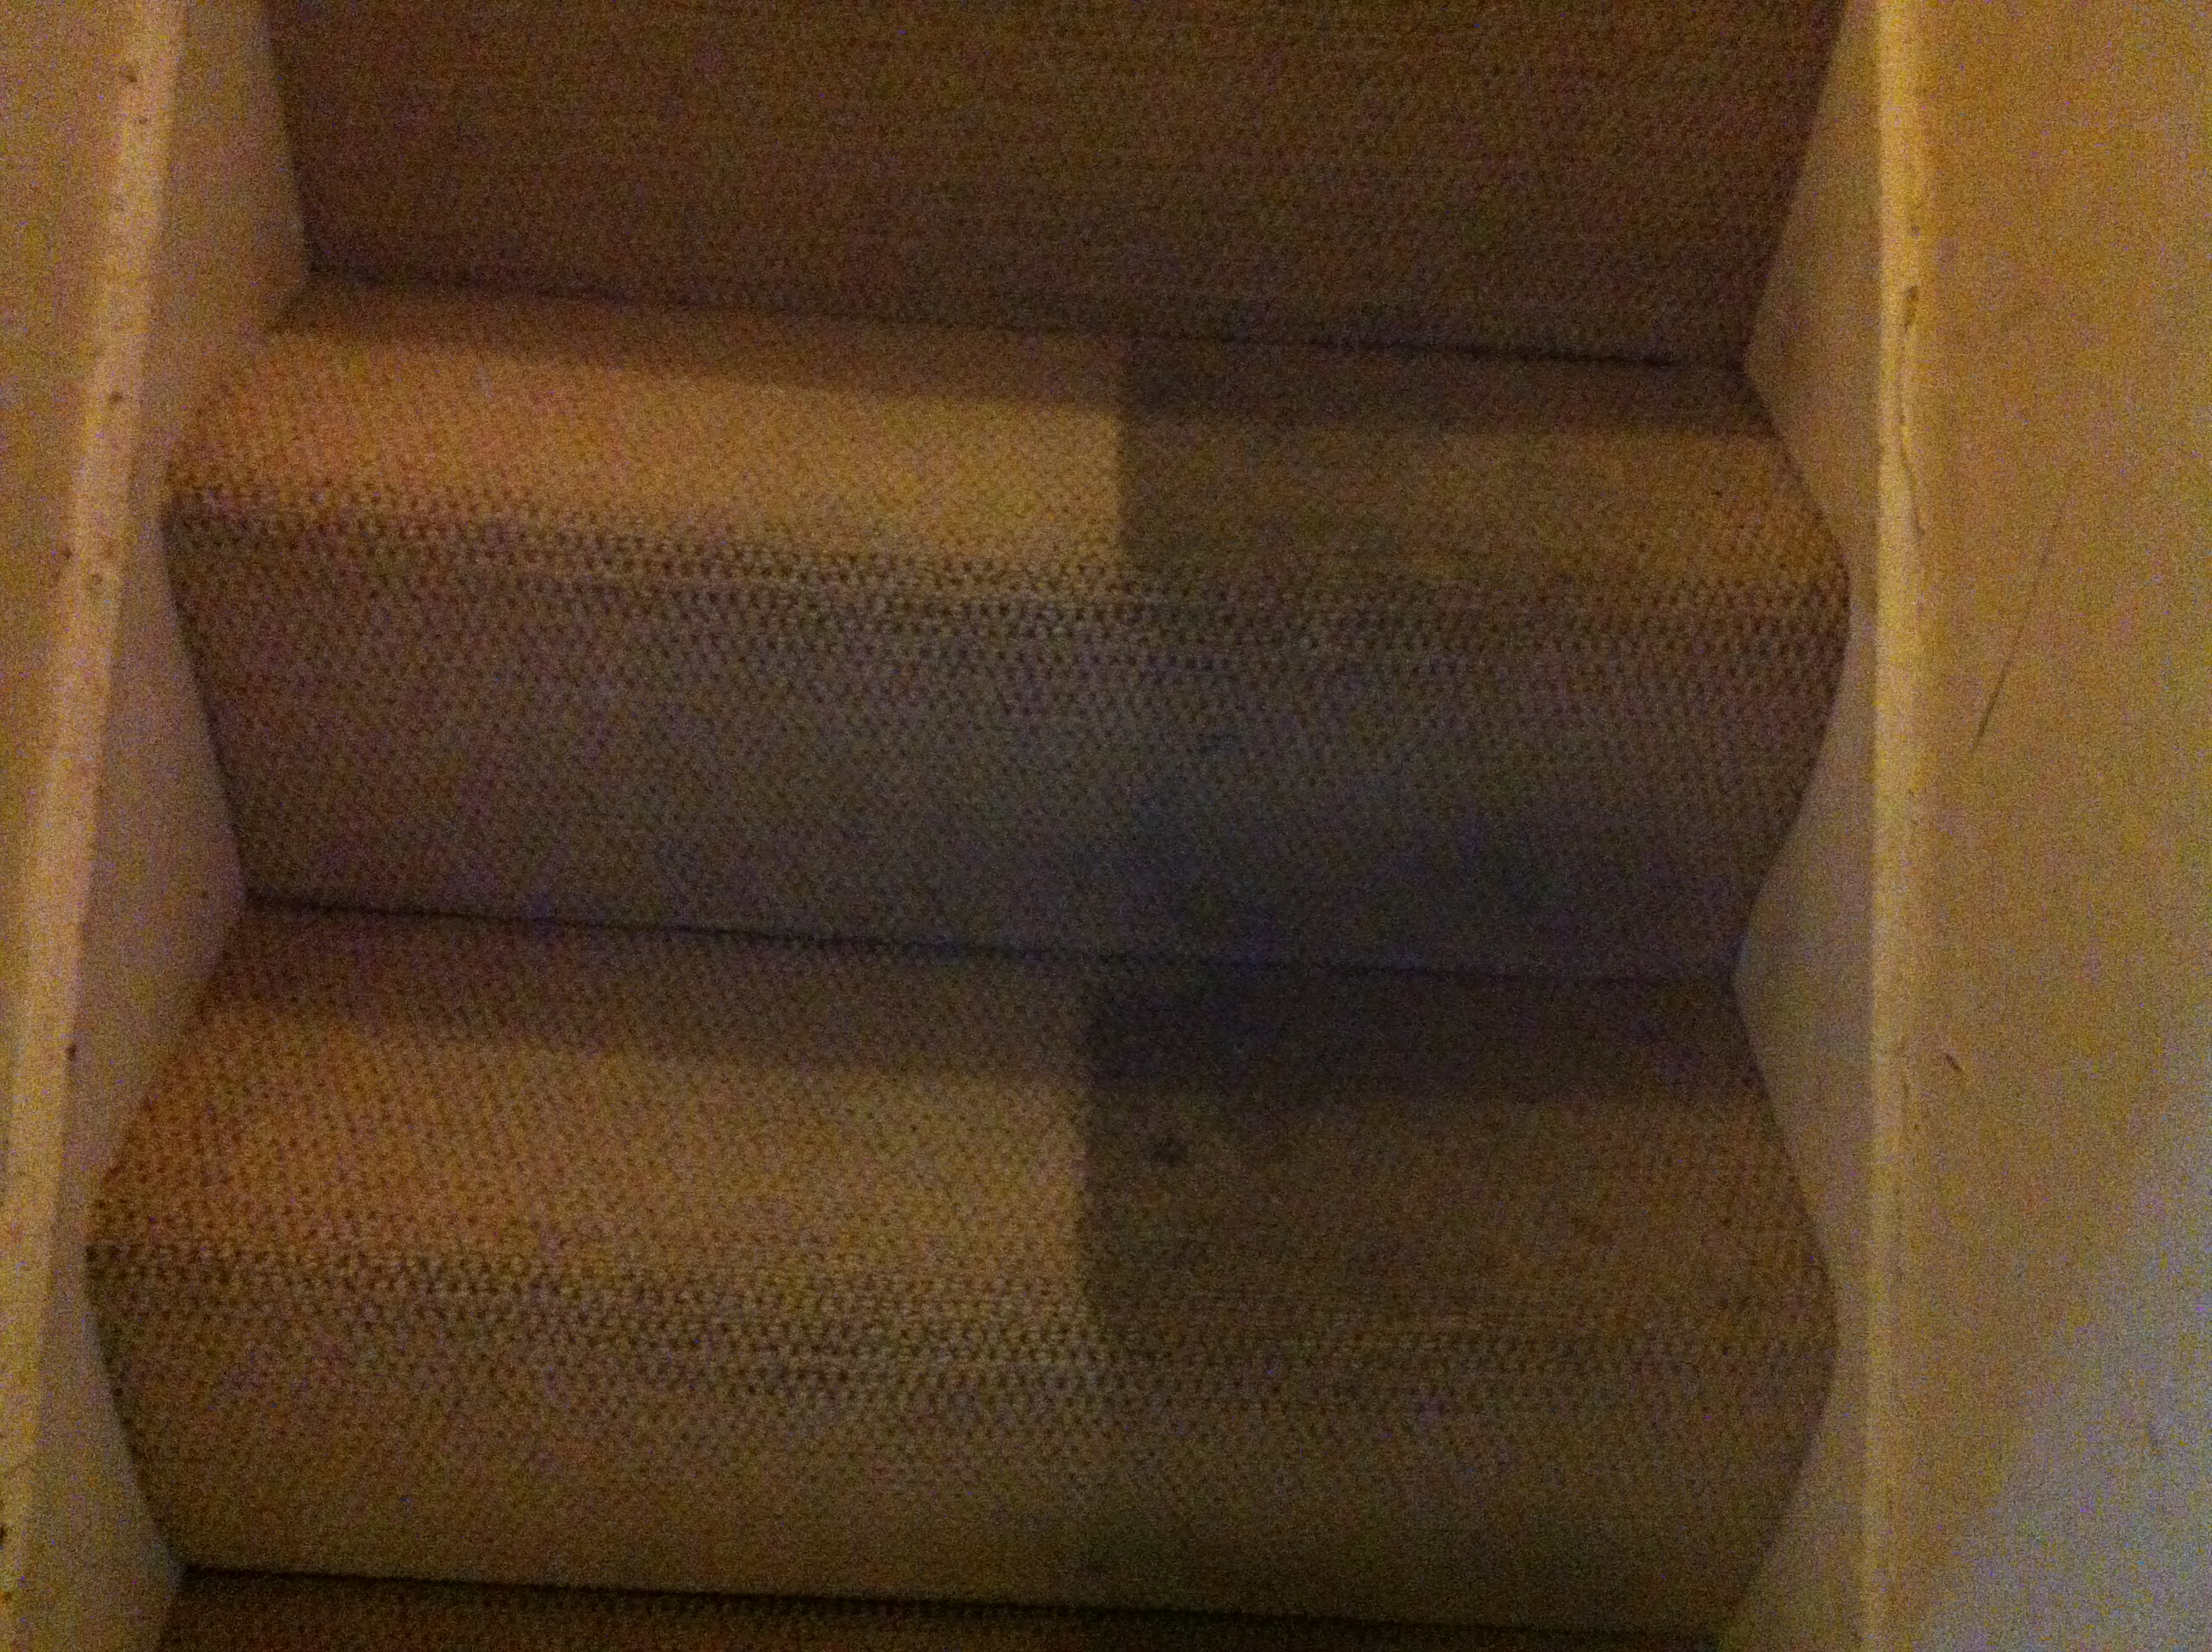 Carpet cleaning Ashford Kent - Castle cleaning